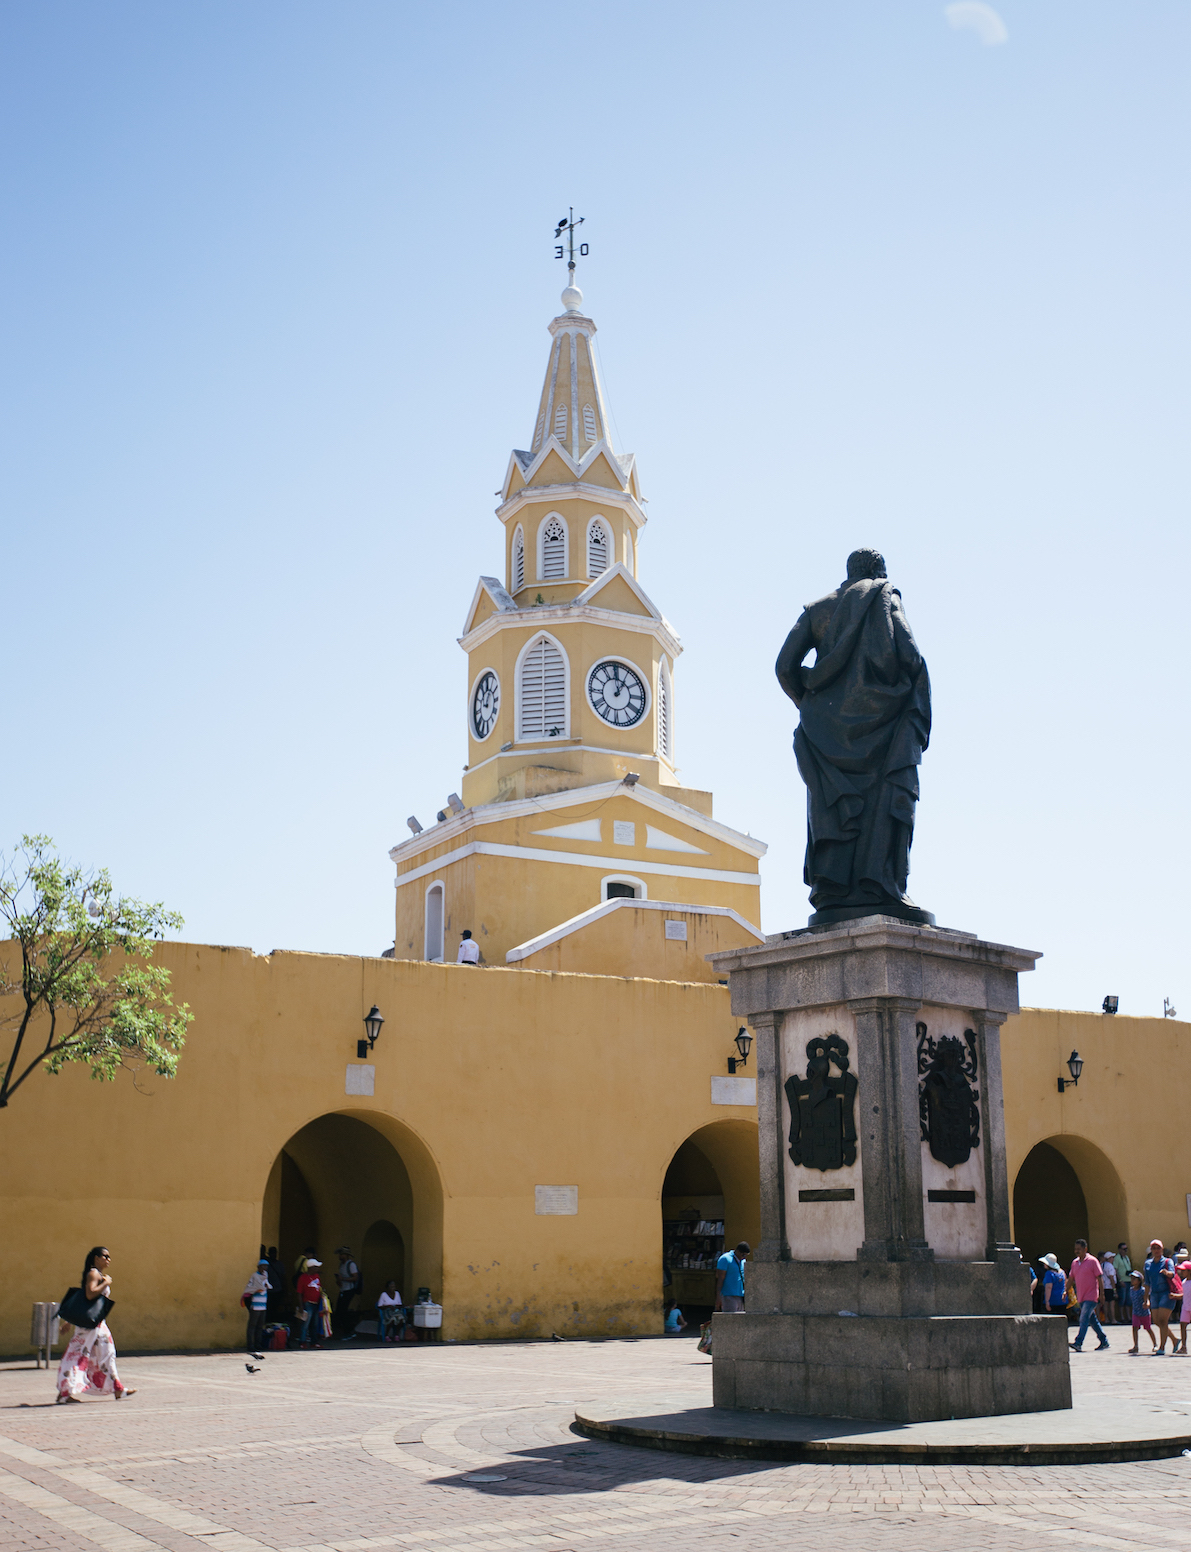 The Clock Tower sits at the main entrance of the wall surrounding the historical core of Cartagena.